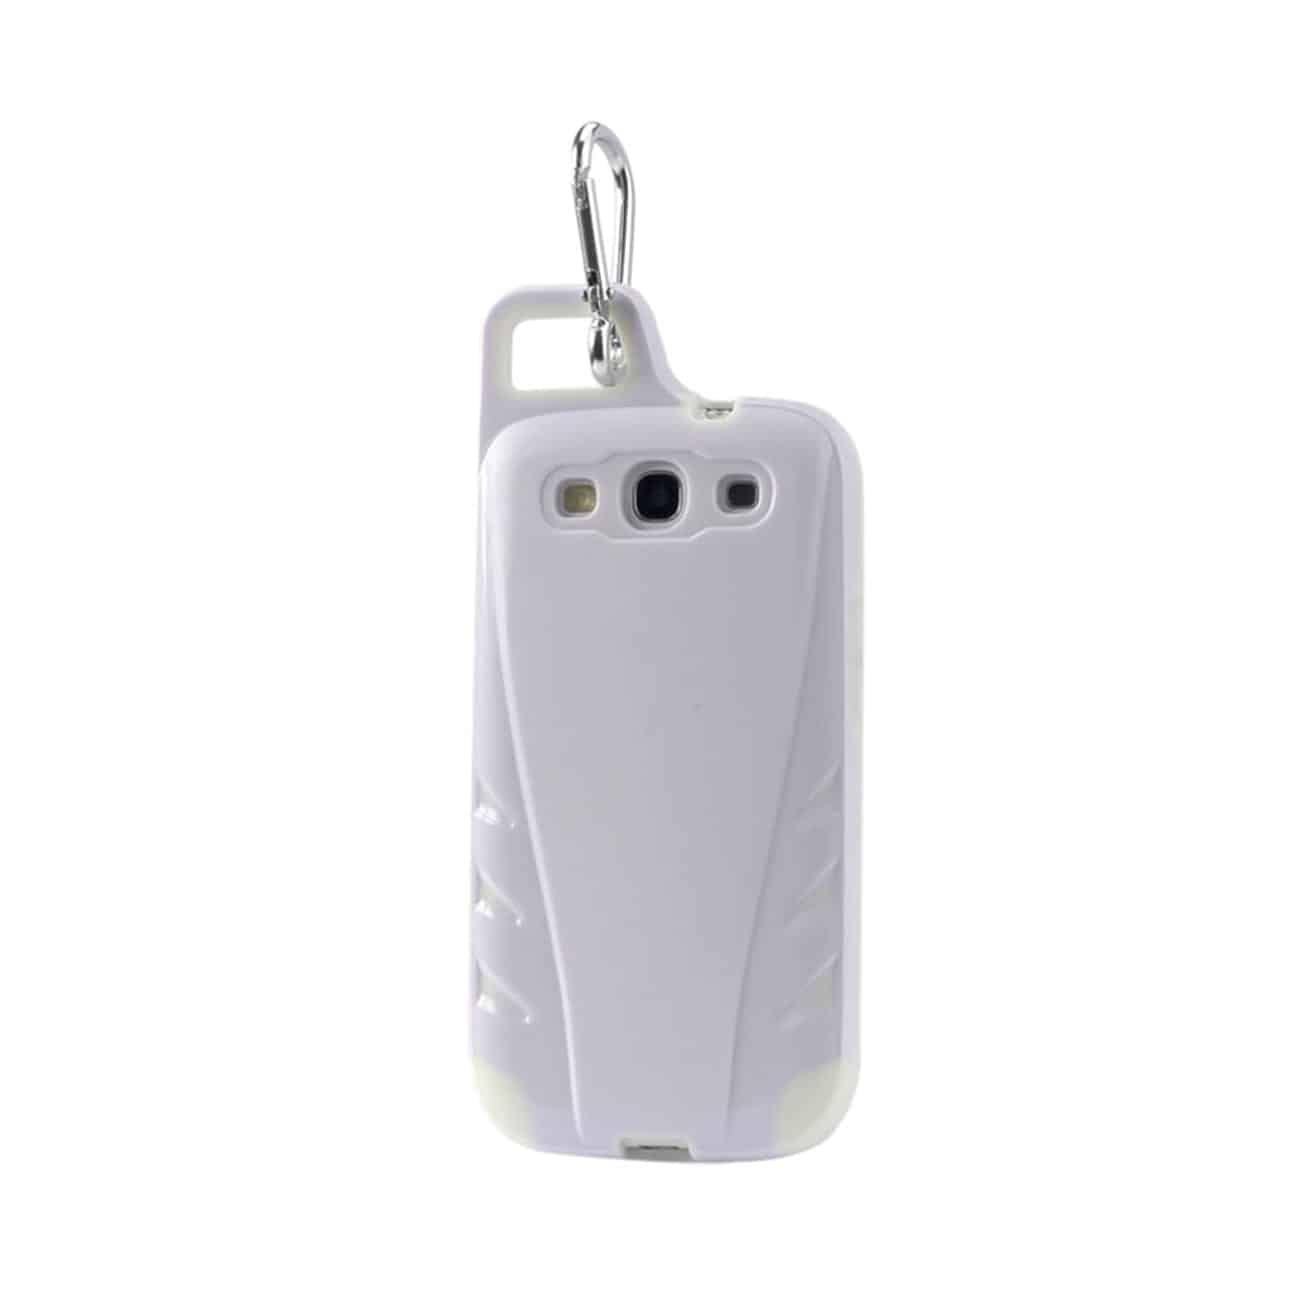 SAMSUNG GALAXY S3 DROPPROOF WORKOUT HYBRID CASE WITH HOOK IN WHITE